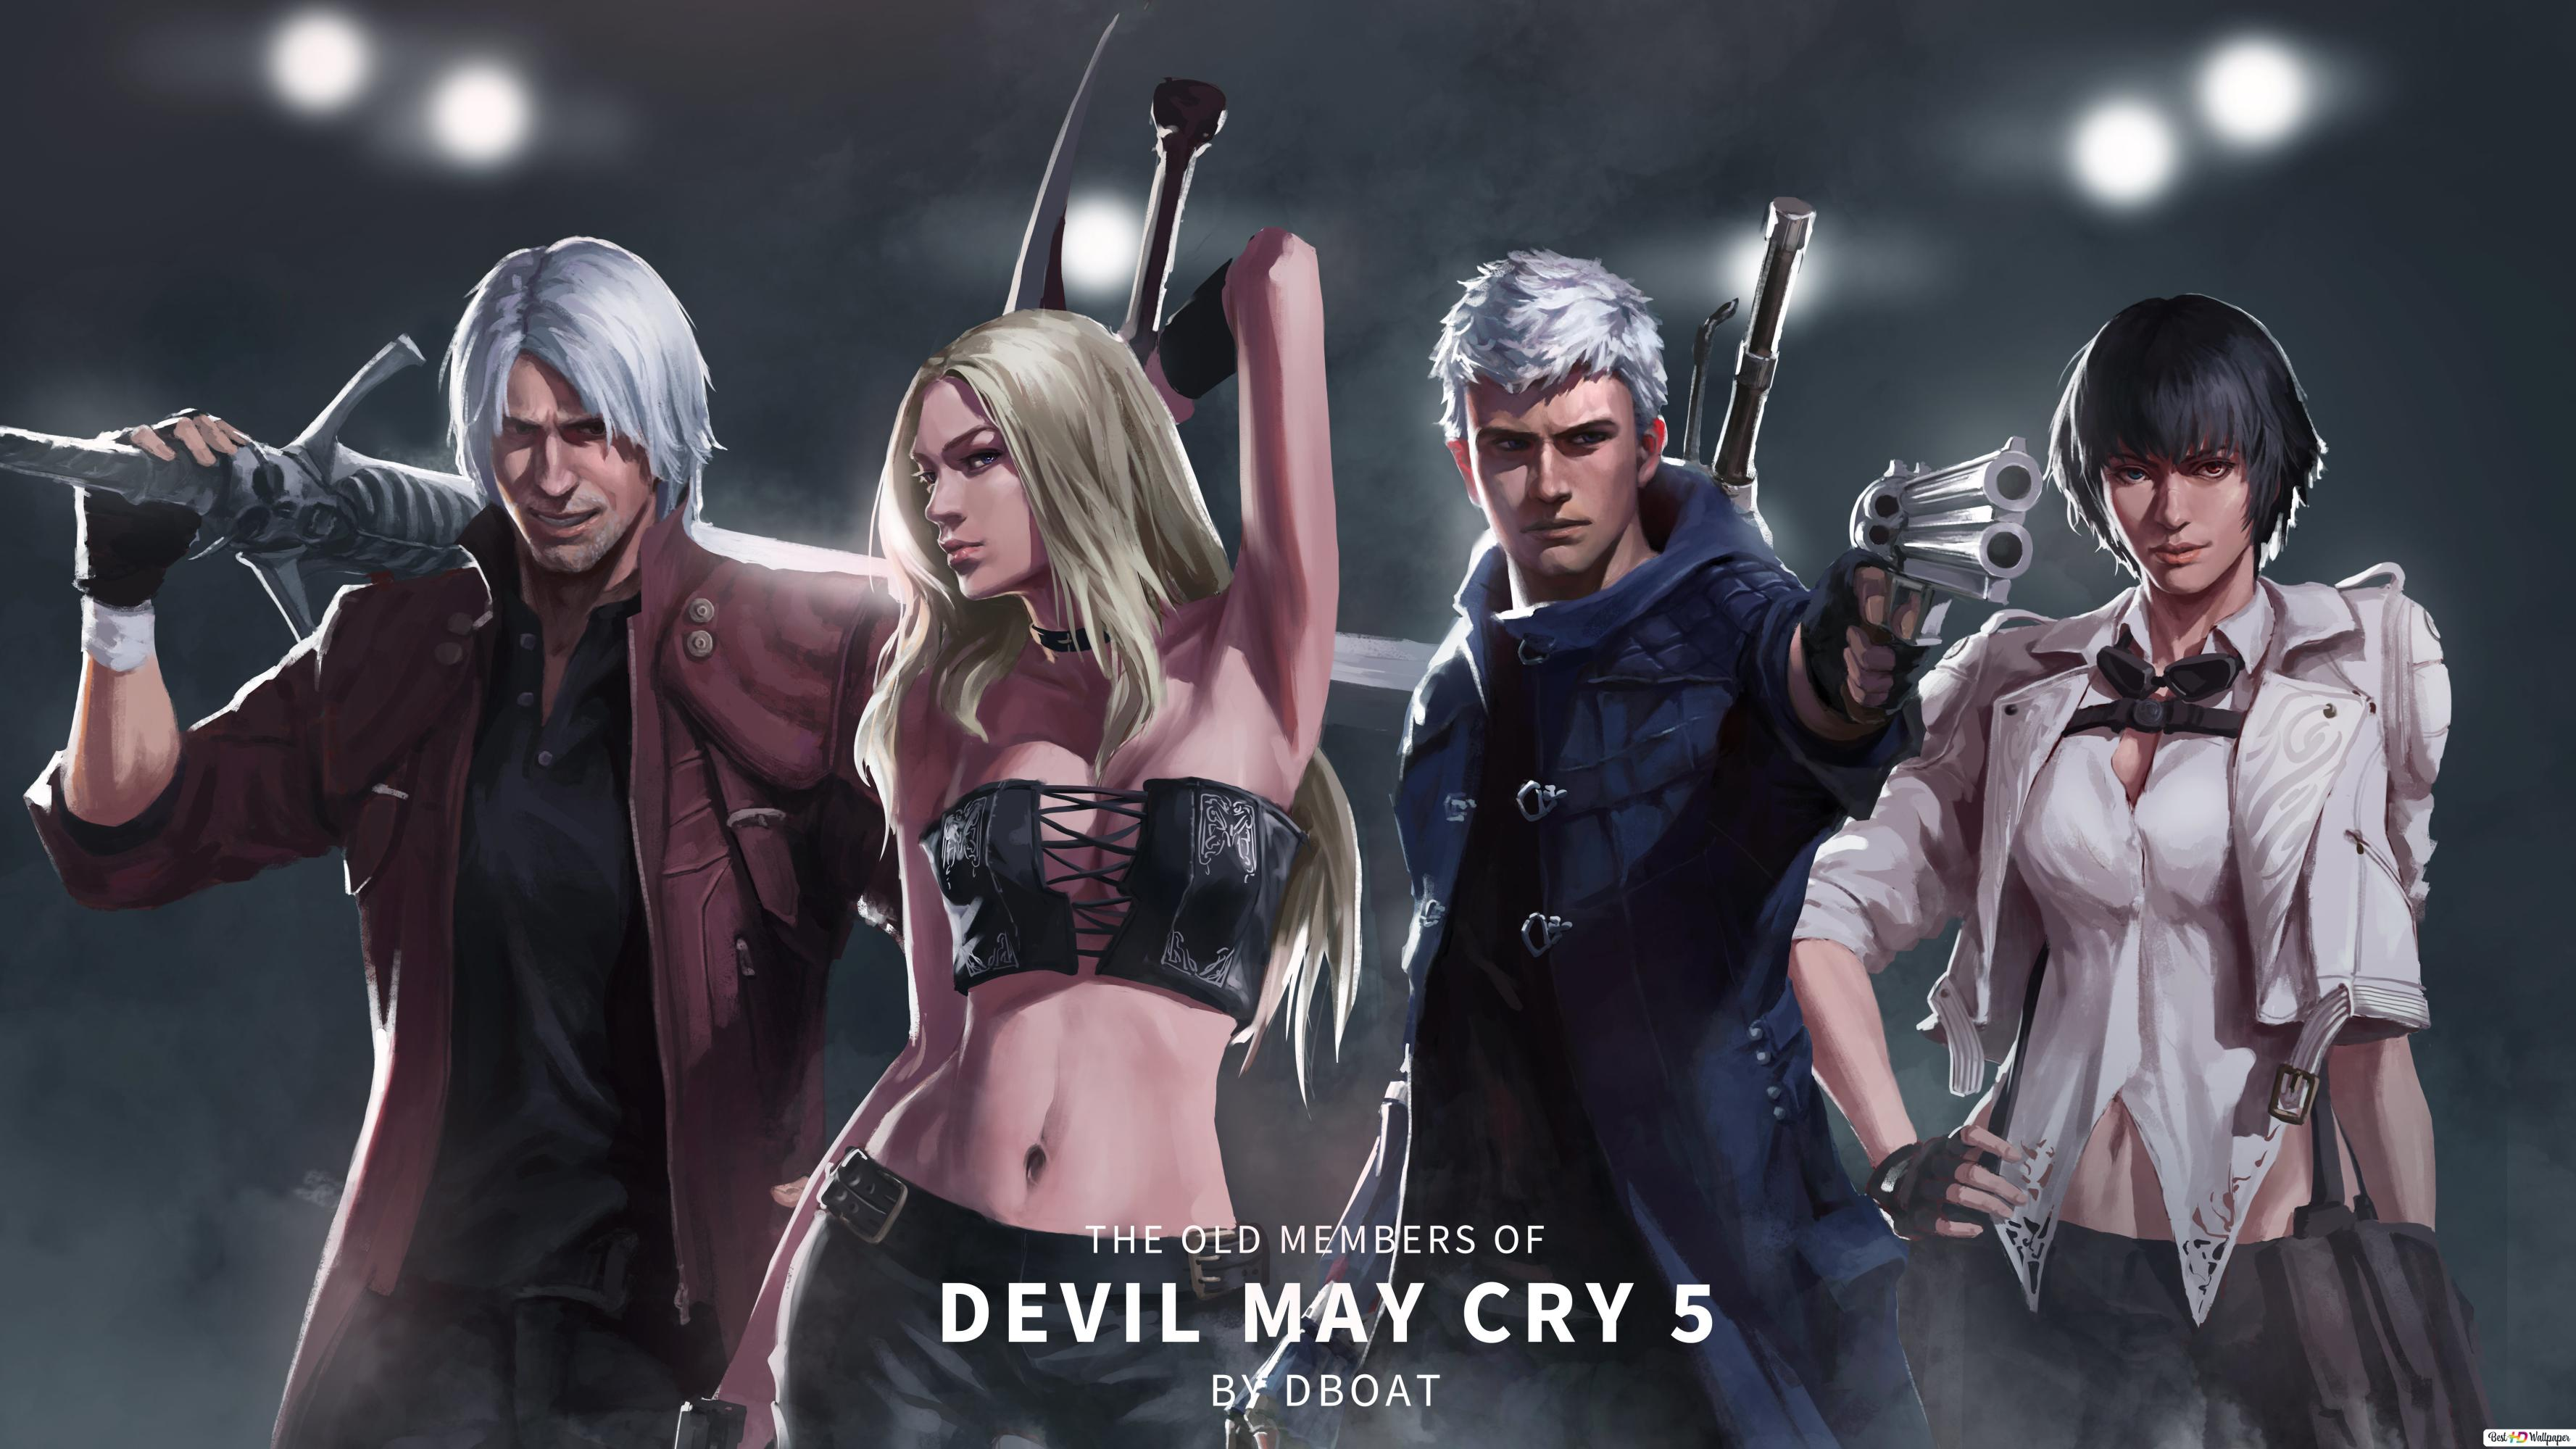 Devil May Cry 5 Demon Heroes Hd Wallpaper Download